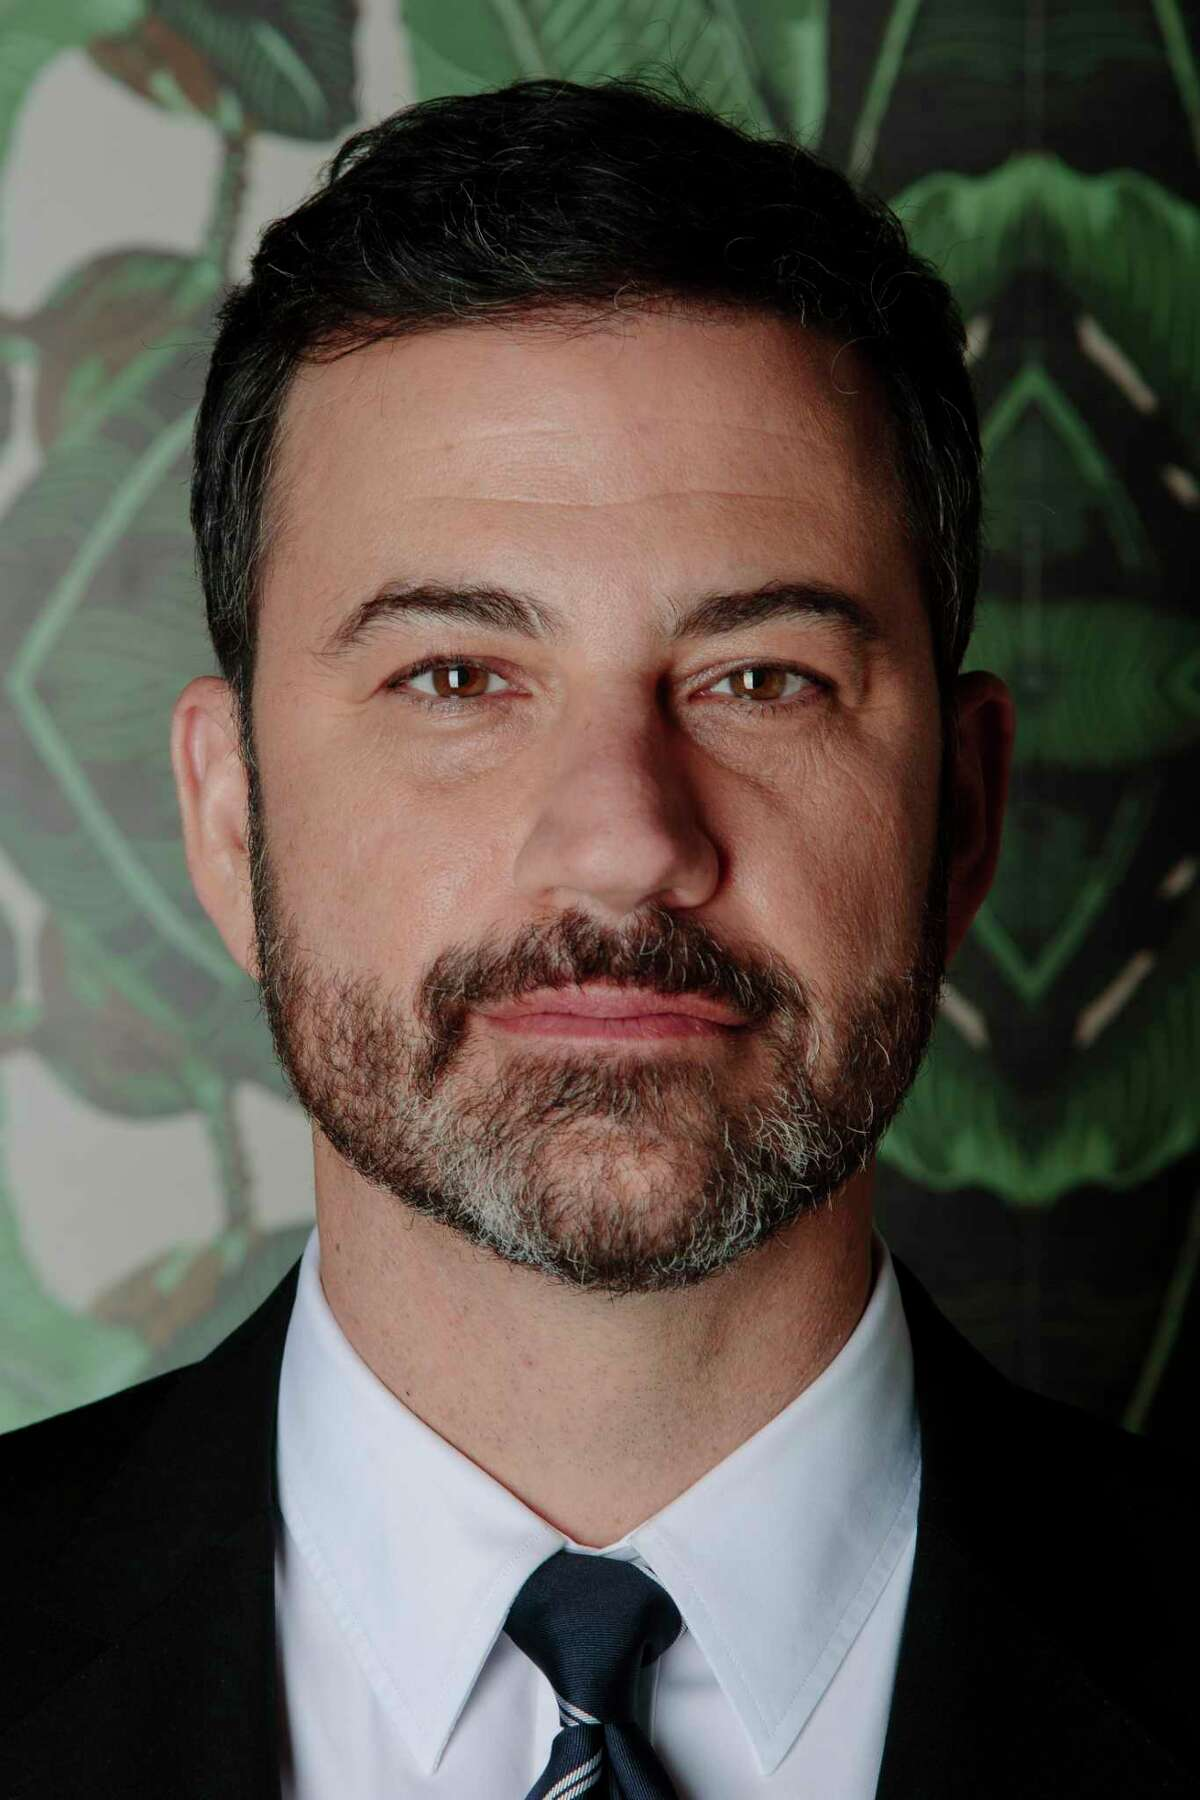 """Jimmy Kimmel, the late-night host, in his show?'s green room in Los Angeles, Feb. 16, 2017. Kimmel is preparing to host the Academy Awards for the first time, and said he?'s not looking at it as a full-time gig. ?""""You never know how these things have gone until you step offstage and read what a bunch of strangers thought,?"""" he said. (Brinson+Banks/The New York Times)-- PART OF A COLLECTION OF STAND-ALONE PHOTOS FOR USE AS DESIRED IN YEAREND STORIES AND RECAPS OF 2017 -- ORG XMIT: NYT196"""